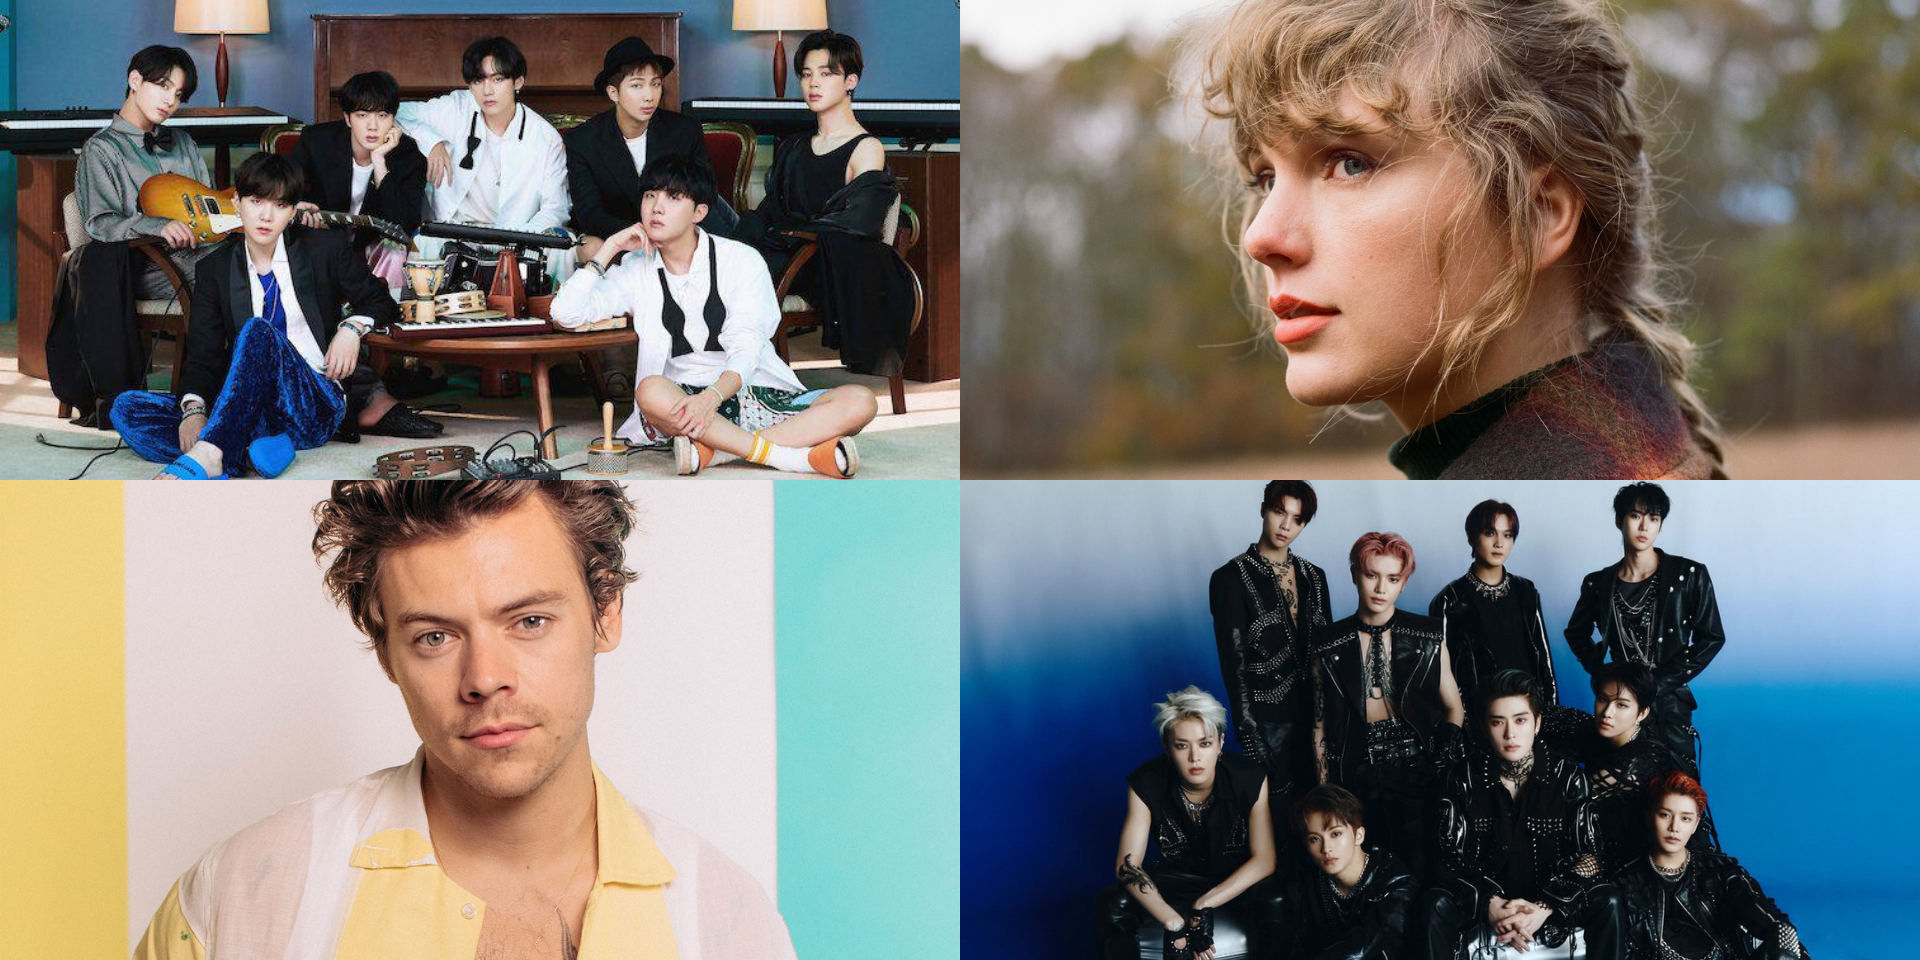 BTS, Taylor Swift, NCT 127, Harry Styles, and more have the best selling albums of 2020